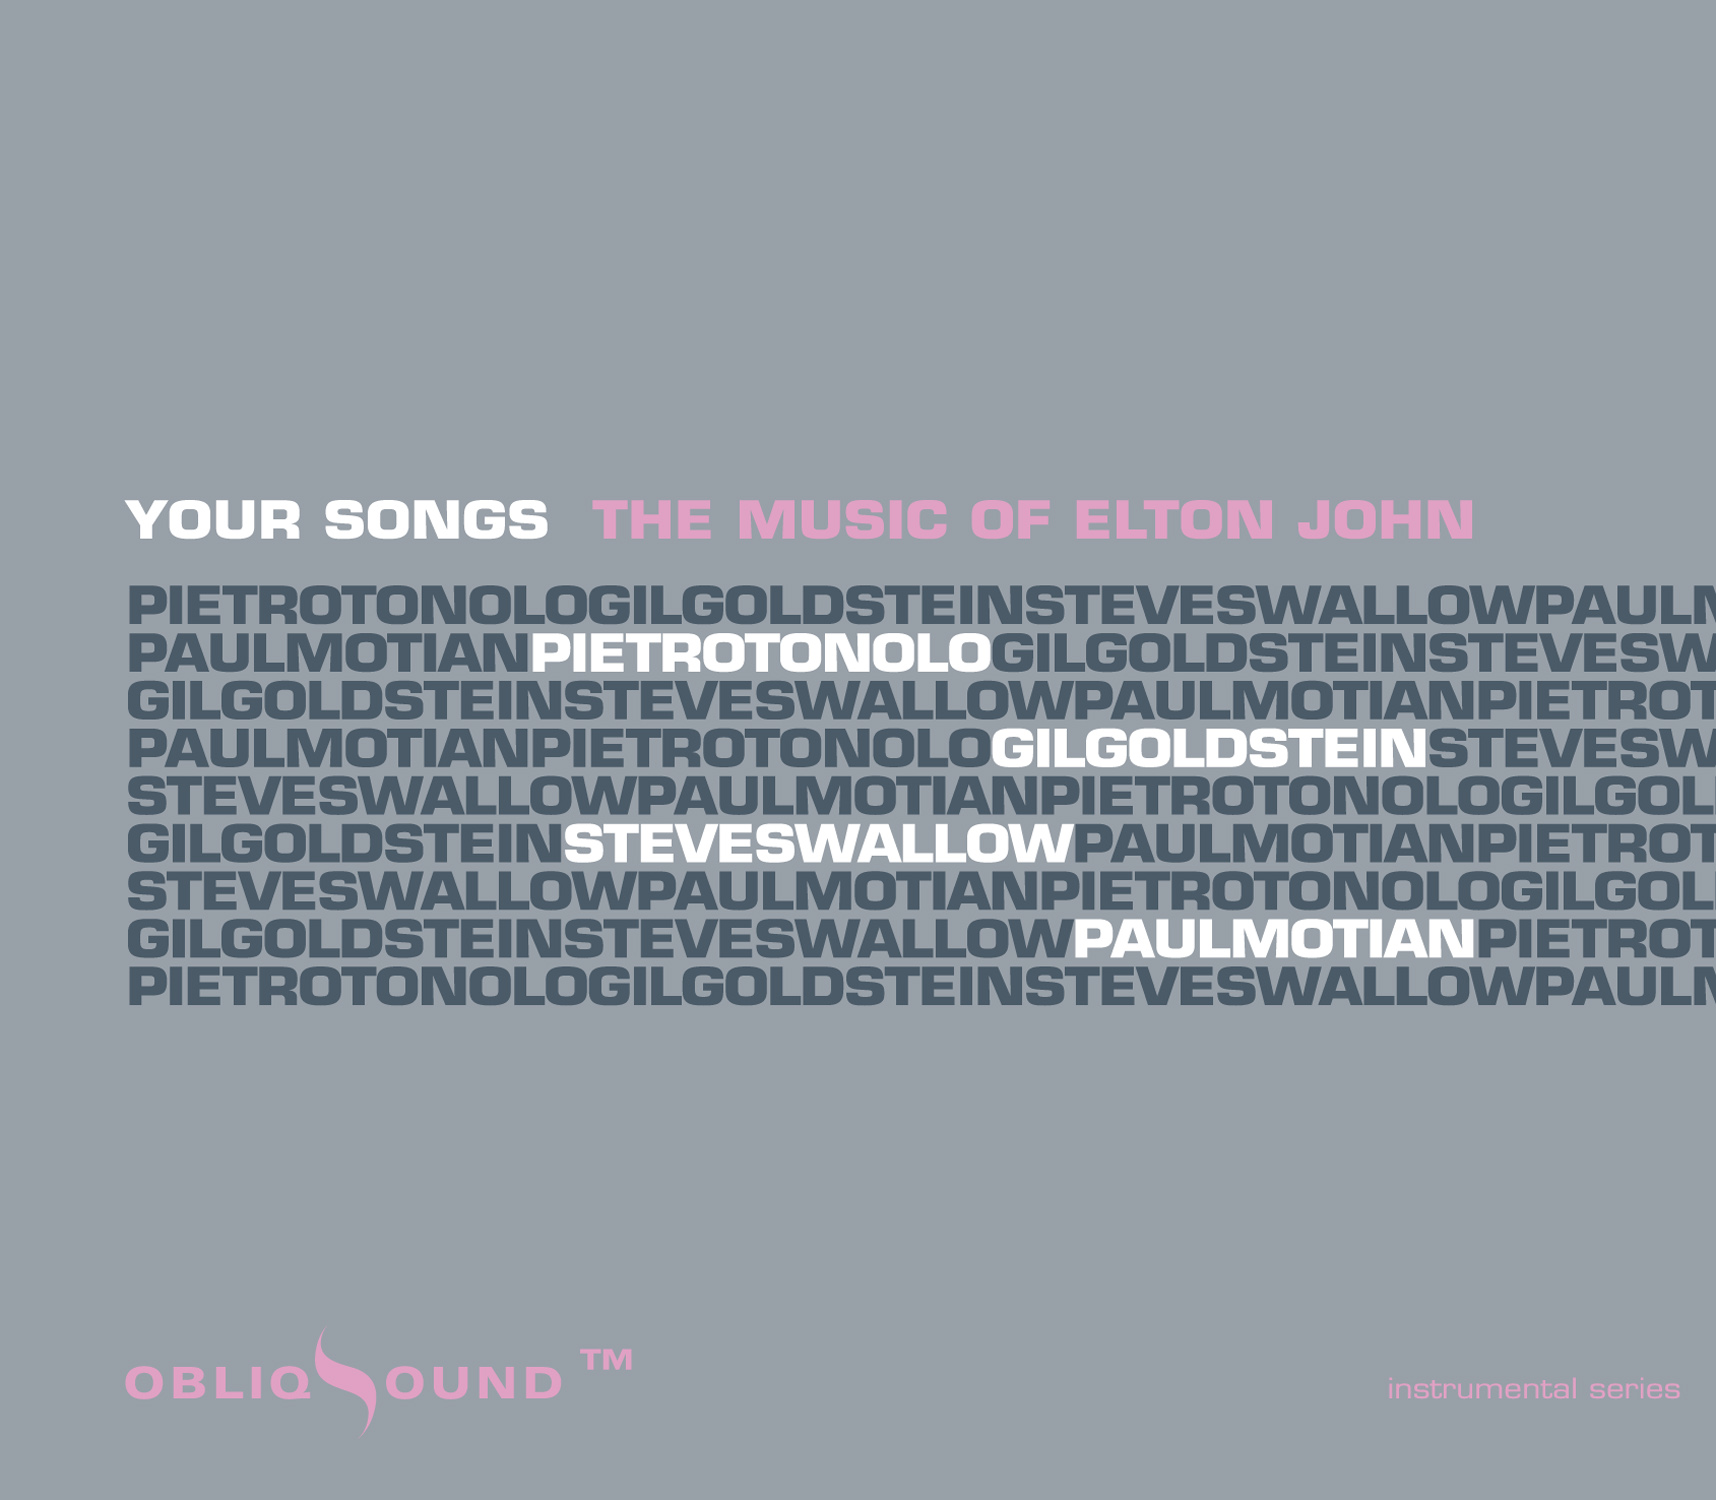 The Music Of Elton John Releases On ObliqSound